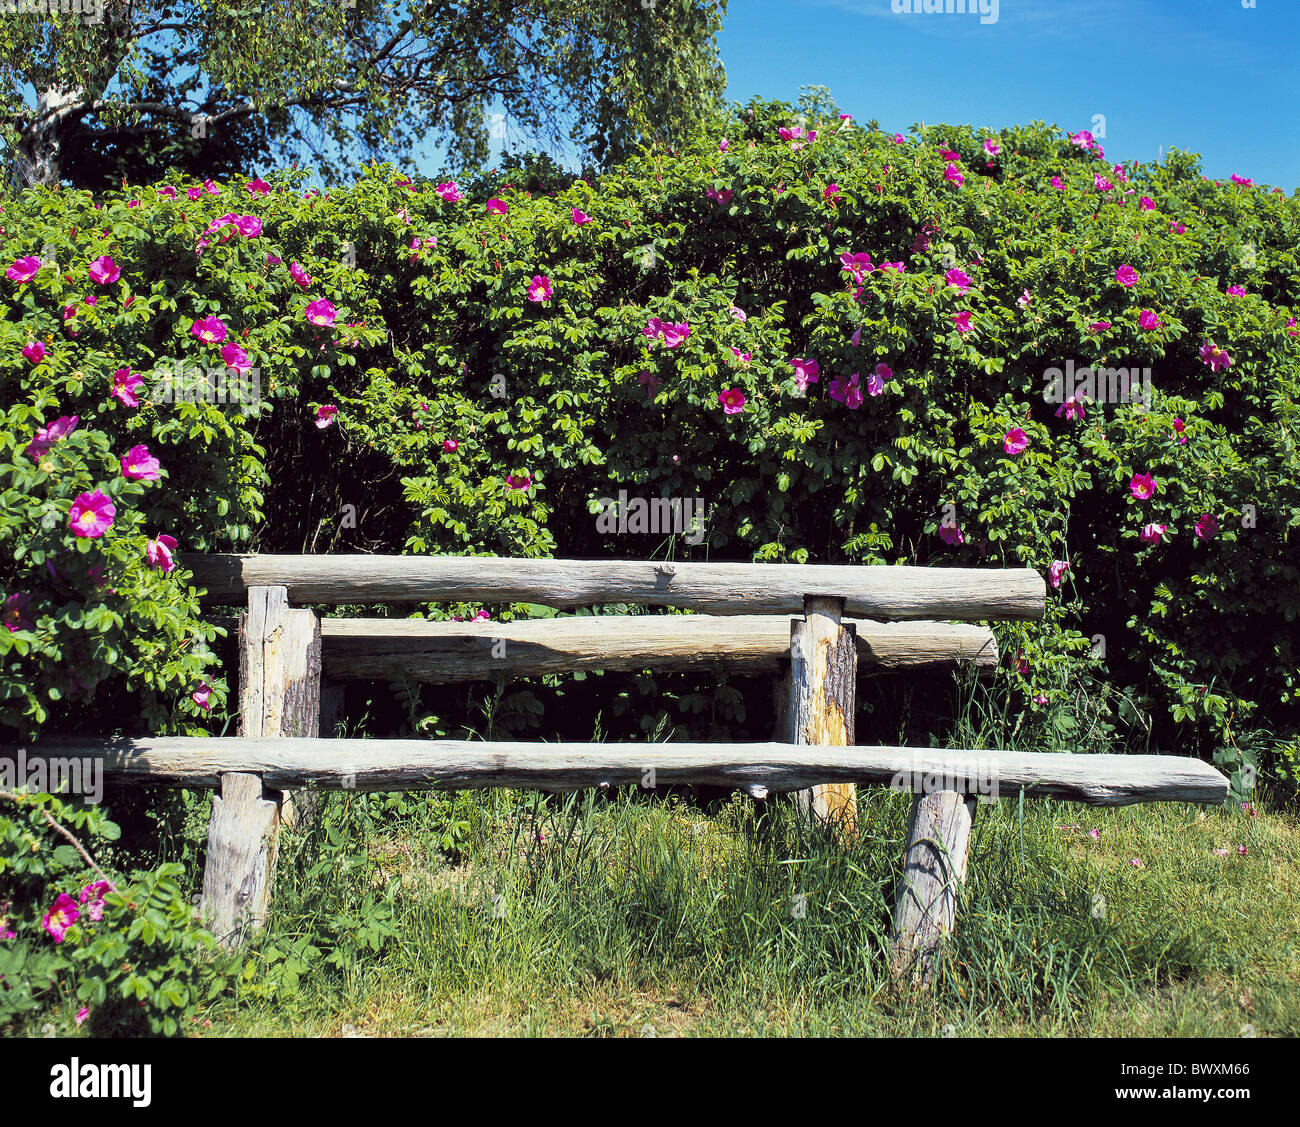 Prime Garden Bush Roses Rose Bush Fragrant Wooden Bank Primitive Gmtry Best Dining Table And Chair Ideas Images Gmtryco